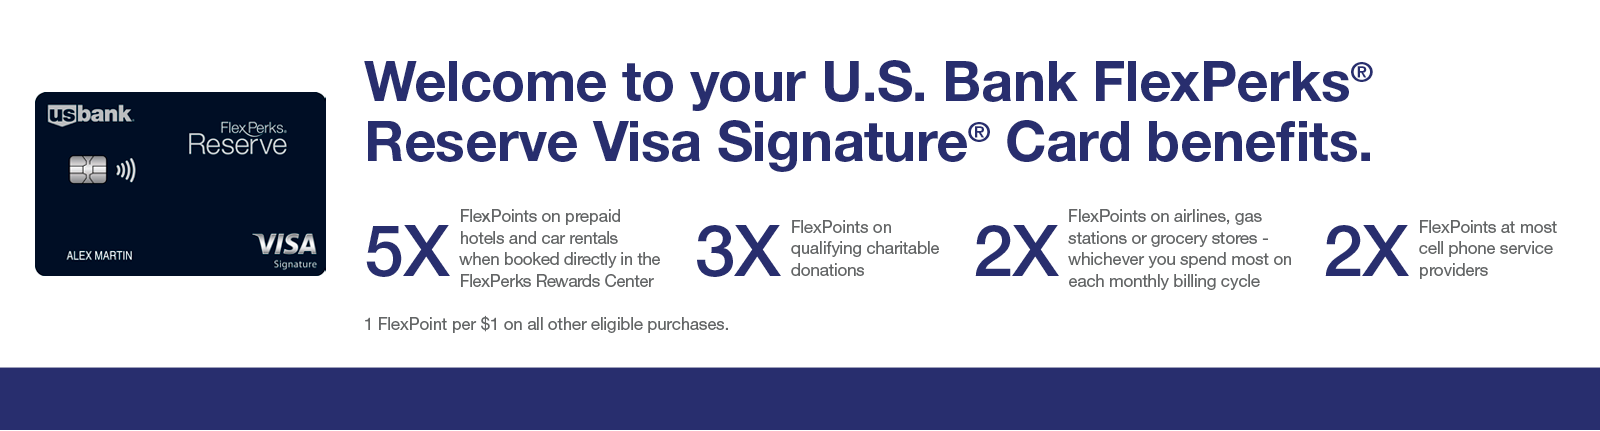 U.S. Bank FlexPerks® Reserve Visa Signature® Card benefits